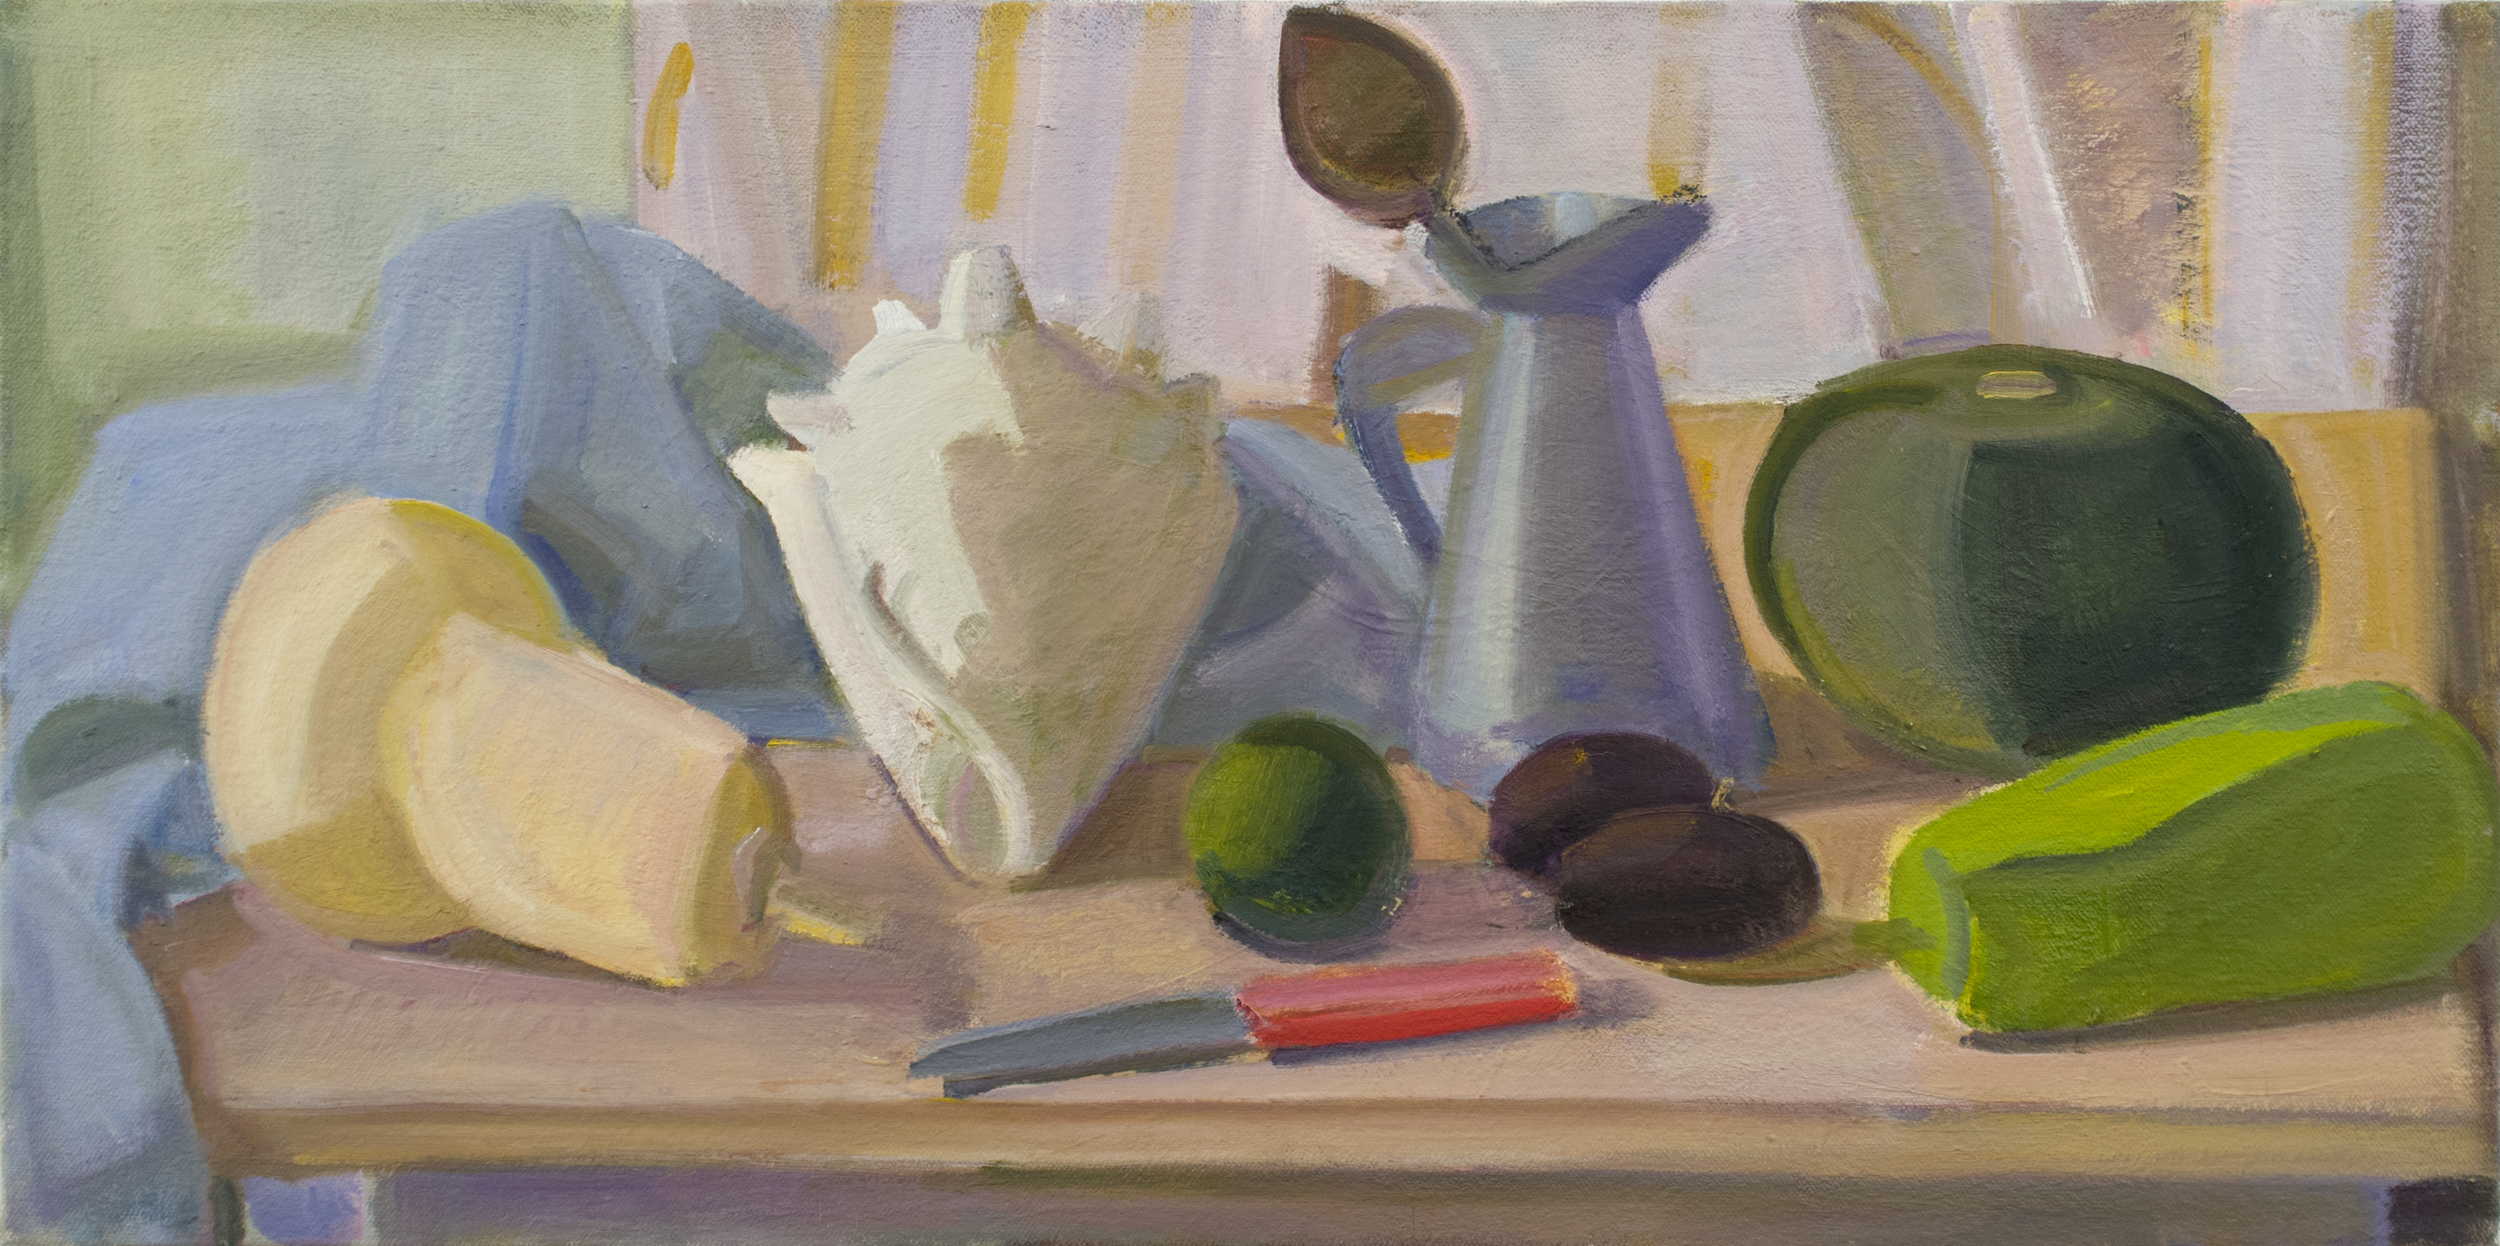 "Shell, Cabocha, Tiny Eggplants and Bitter Gourd w/Red Knife, oil on canvas, 12""x24"""